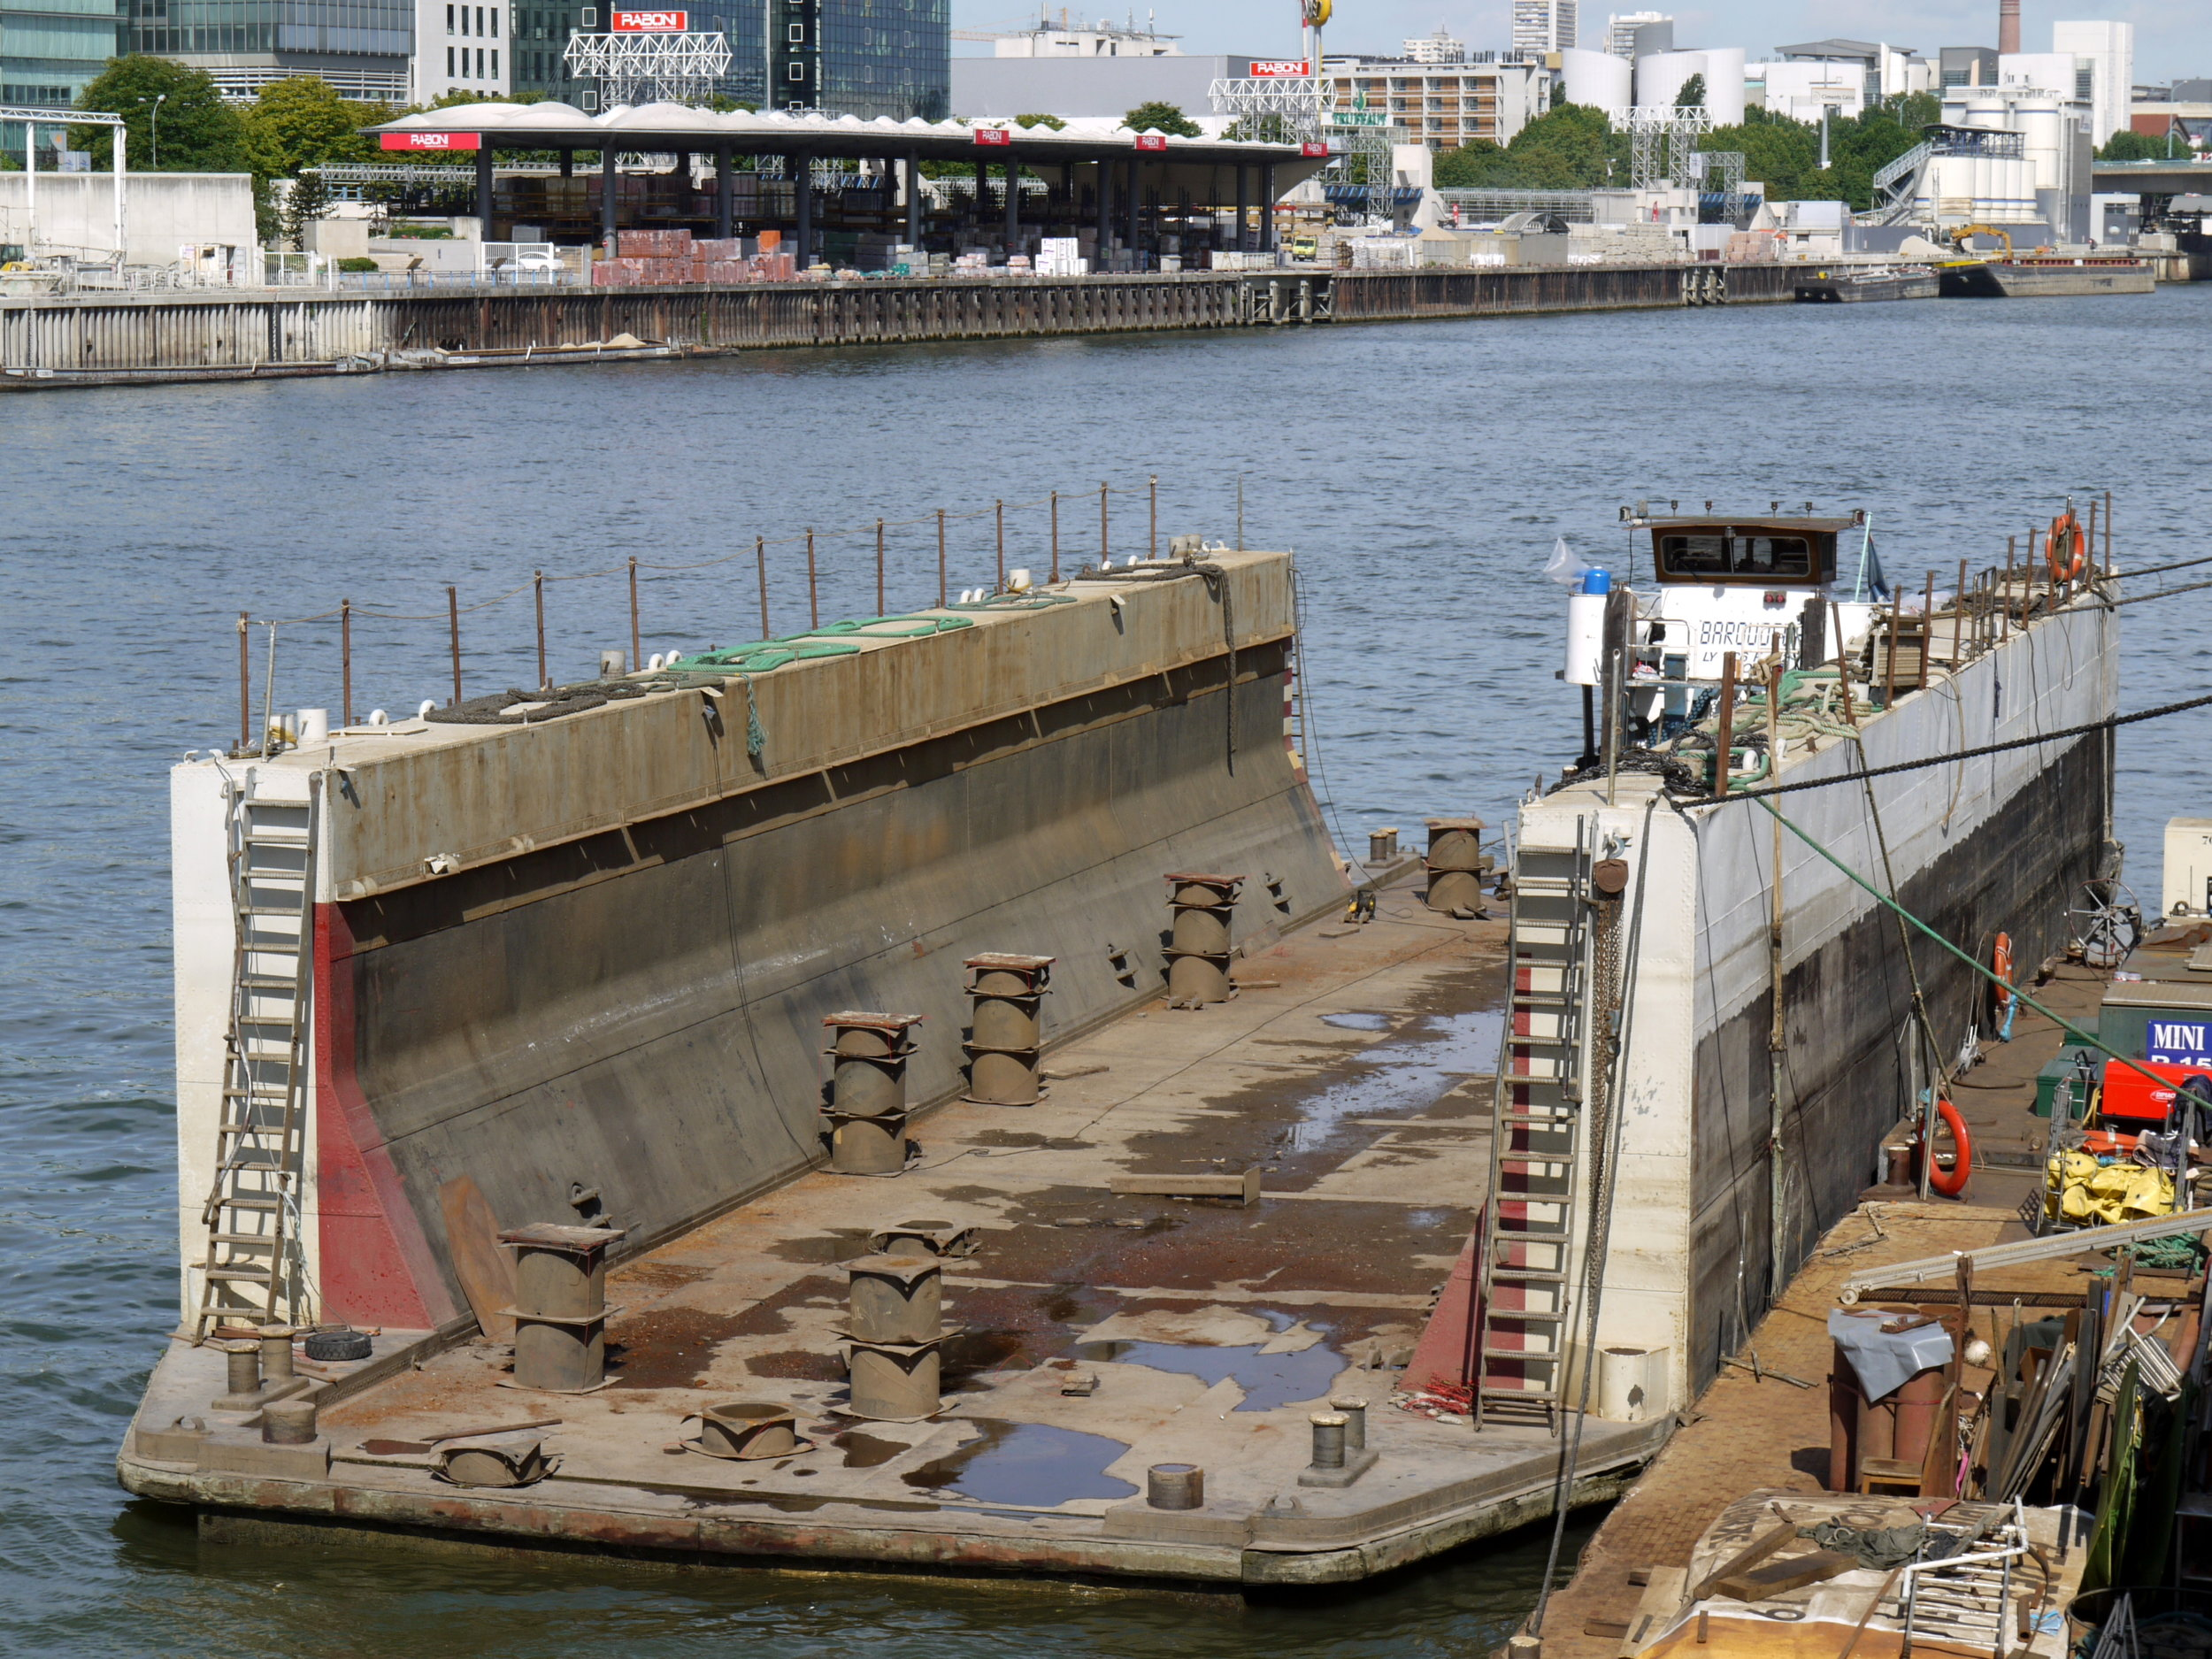 River_floating_dry_dock_P1050226 (1).JPG